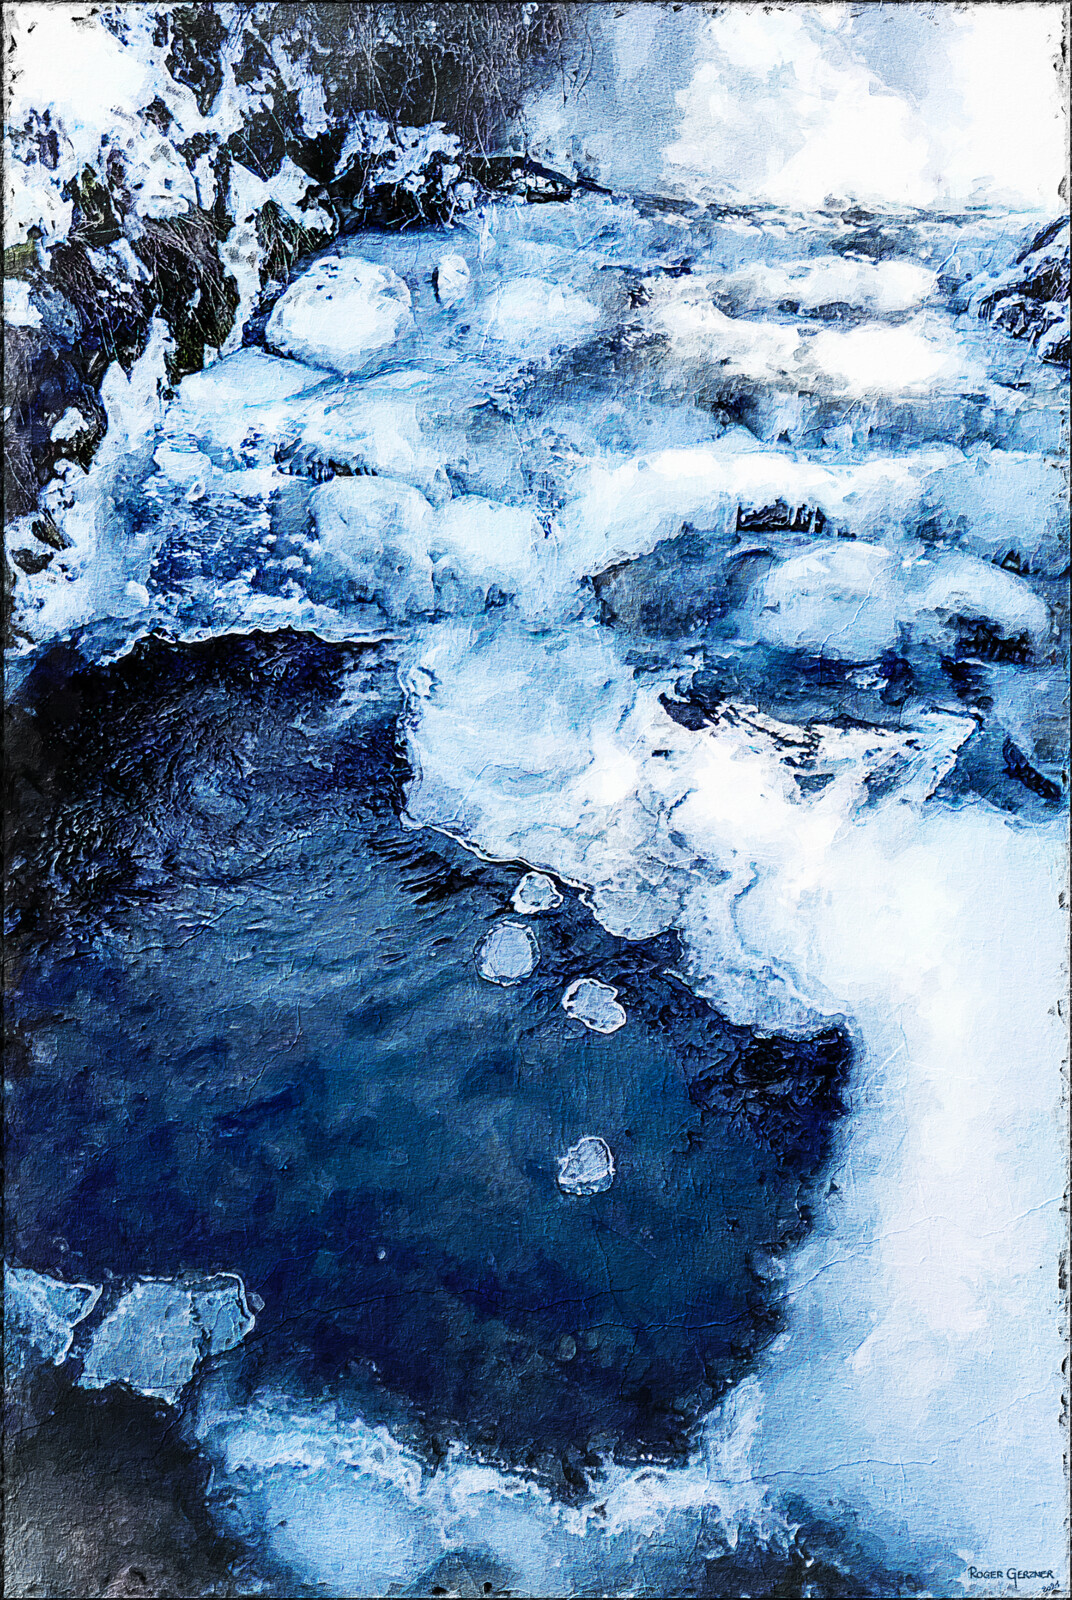 Icy Creek in the winter of 2017  - Digital Oil Paint